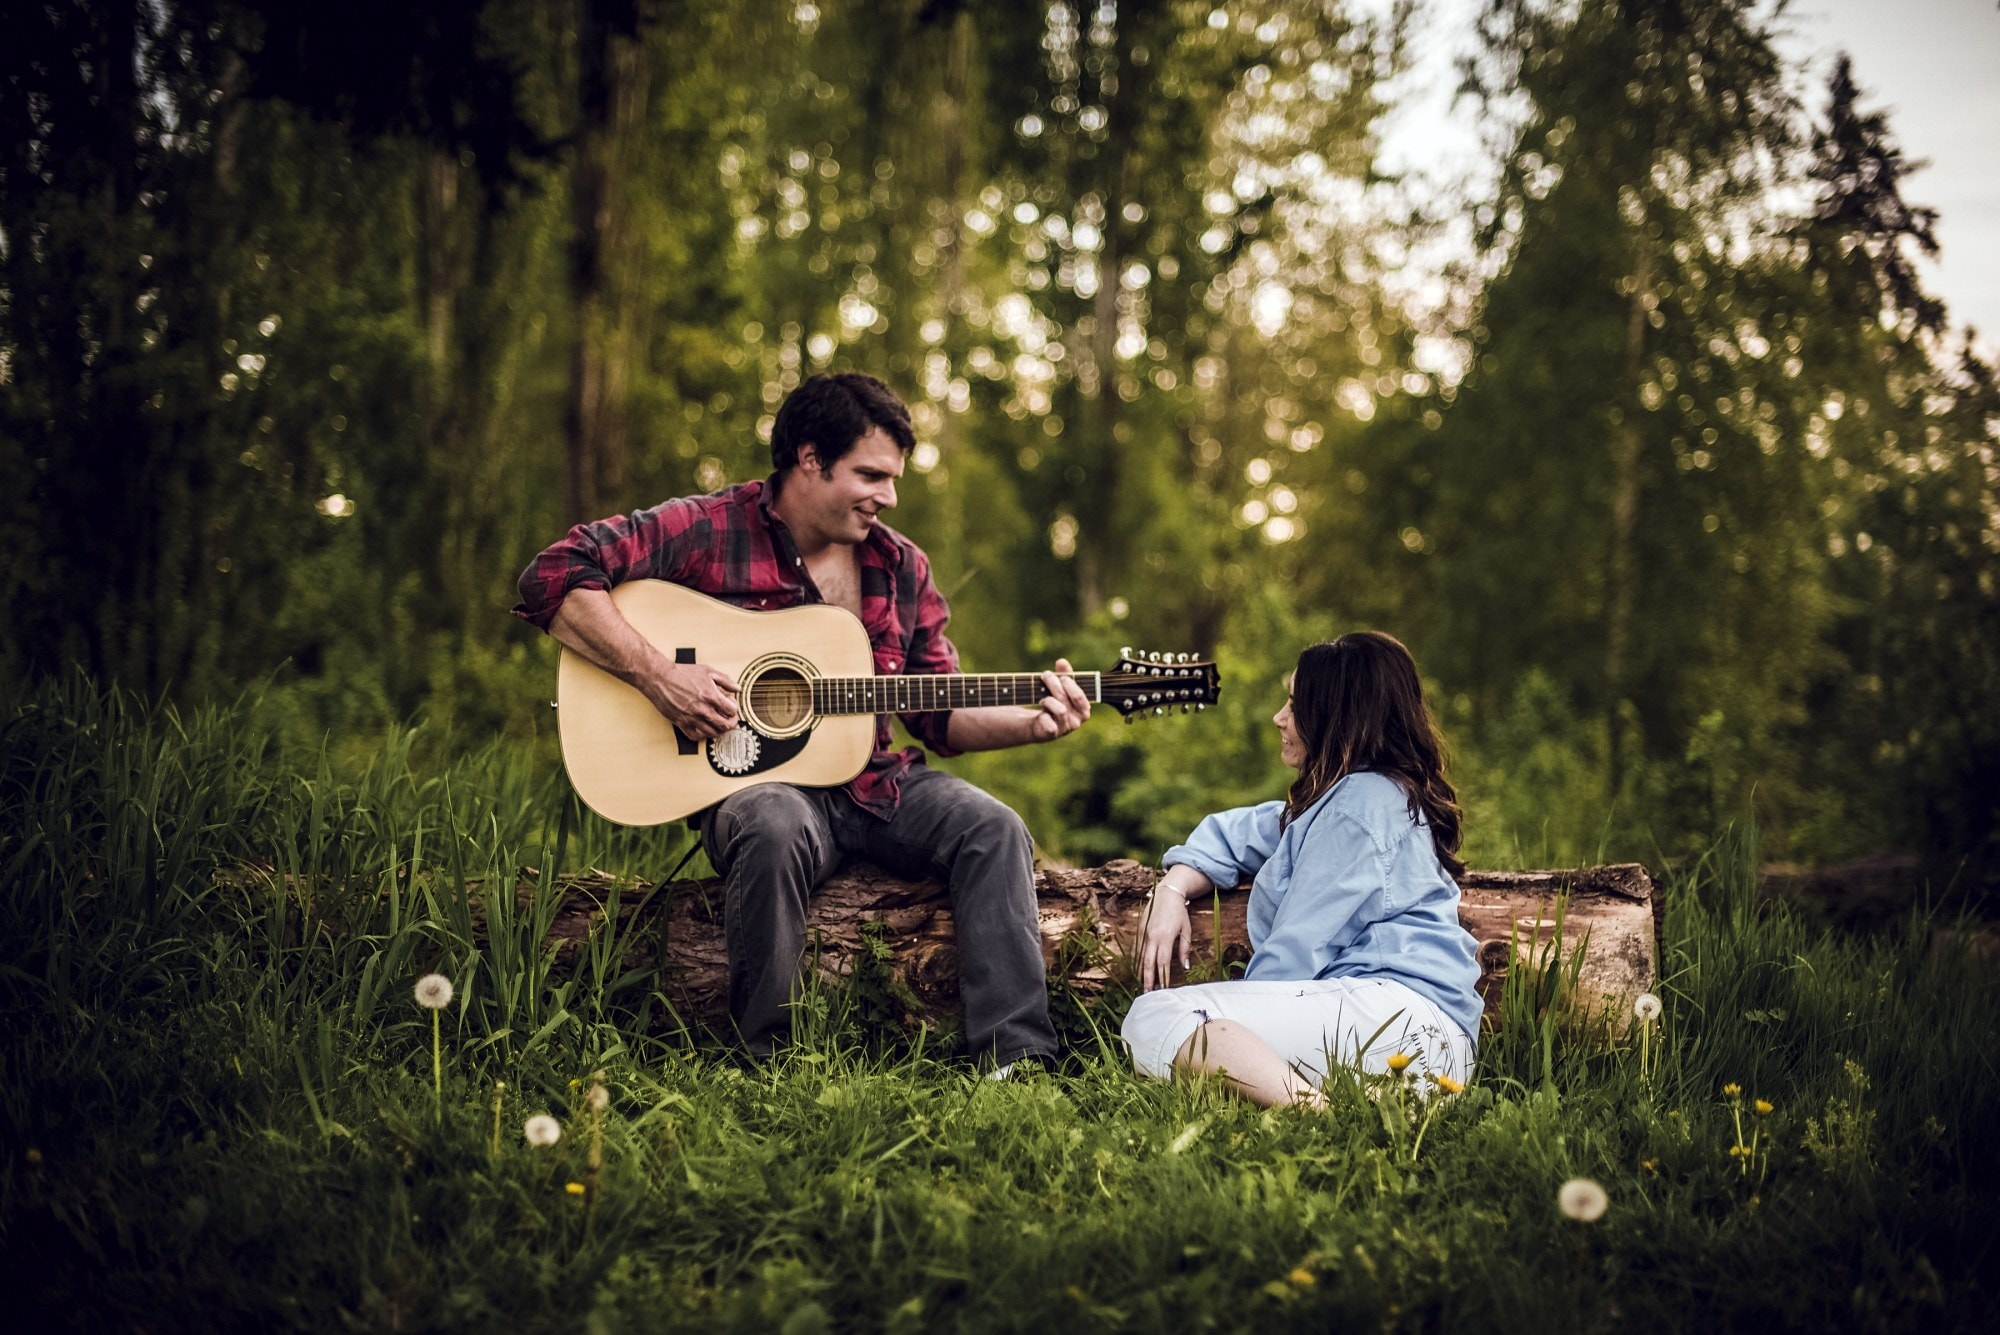 man and woman sitting on grass field playing guitar during daytime